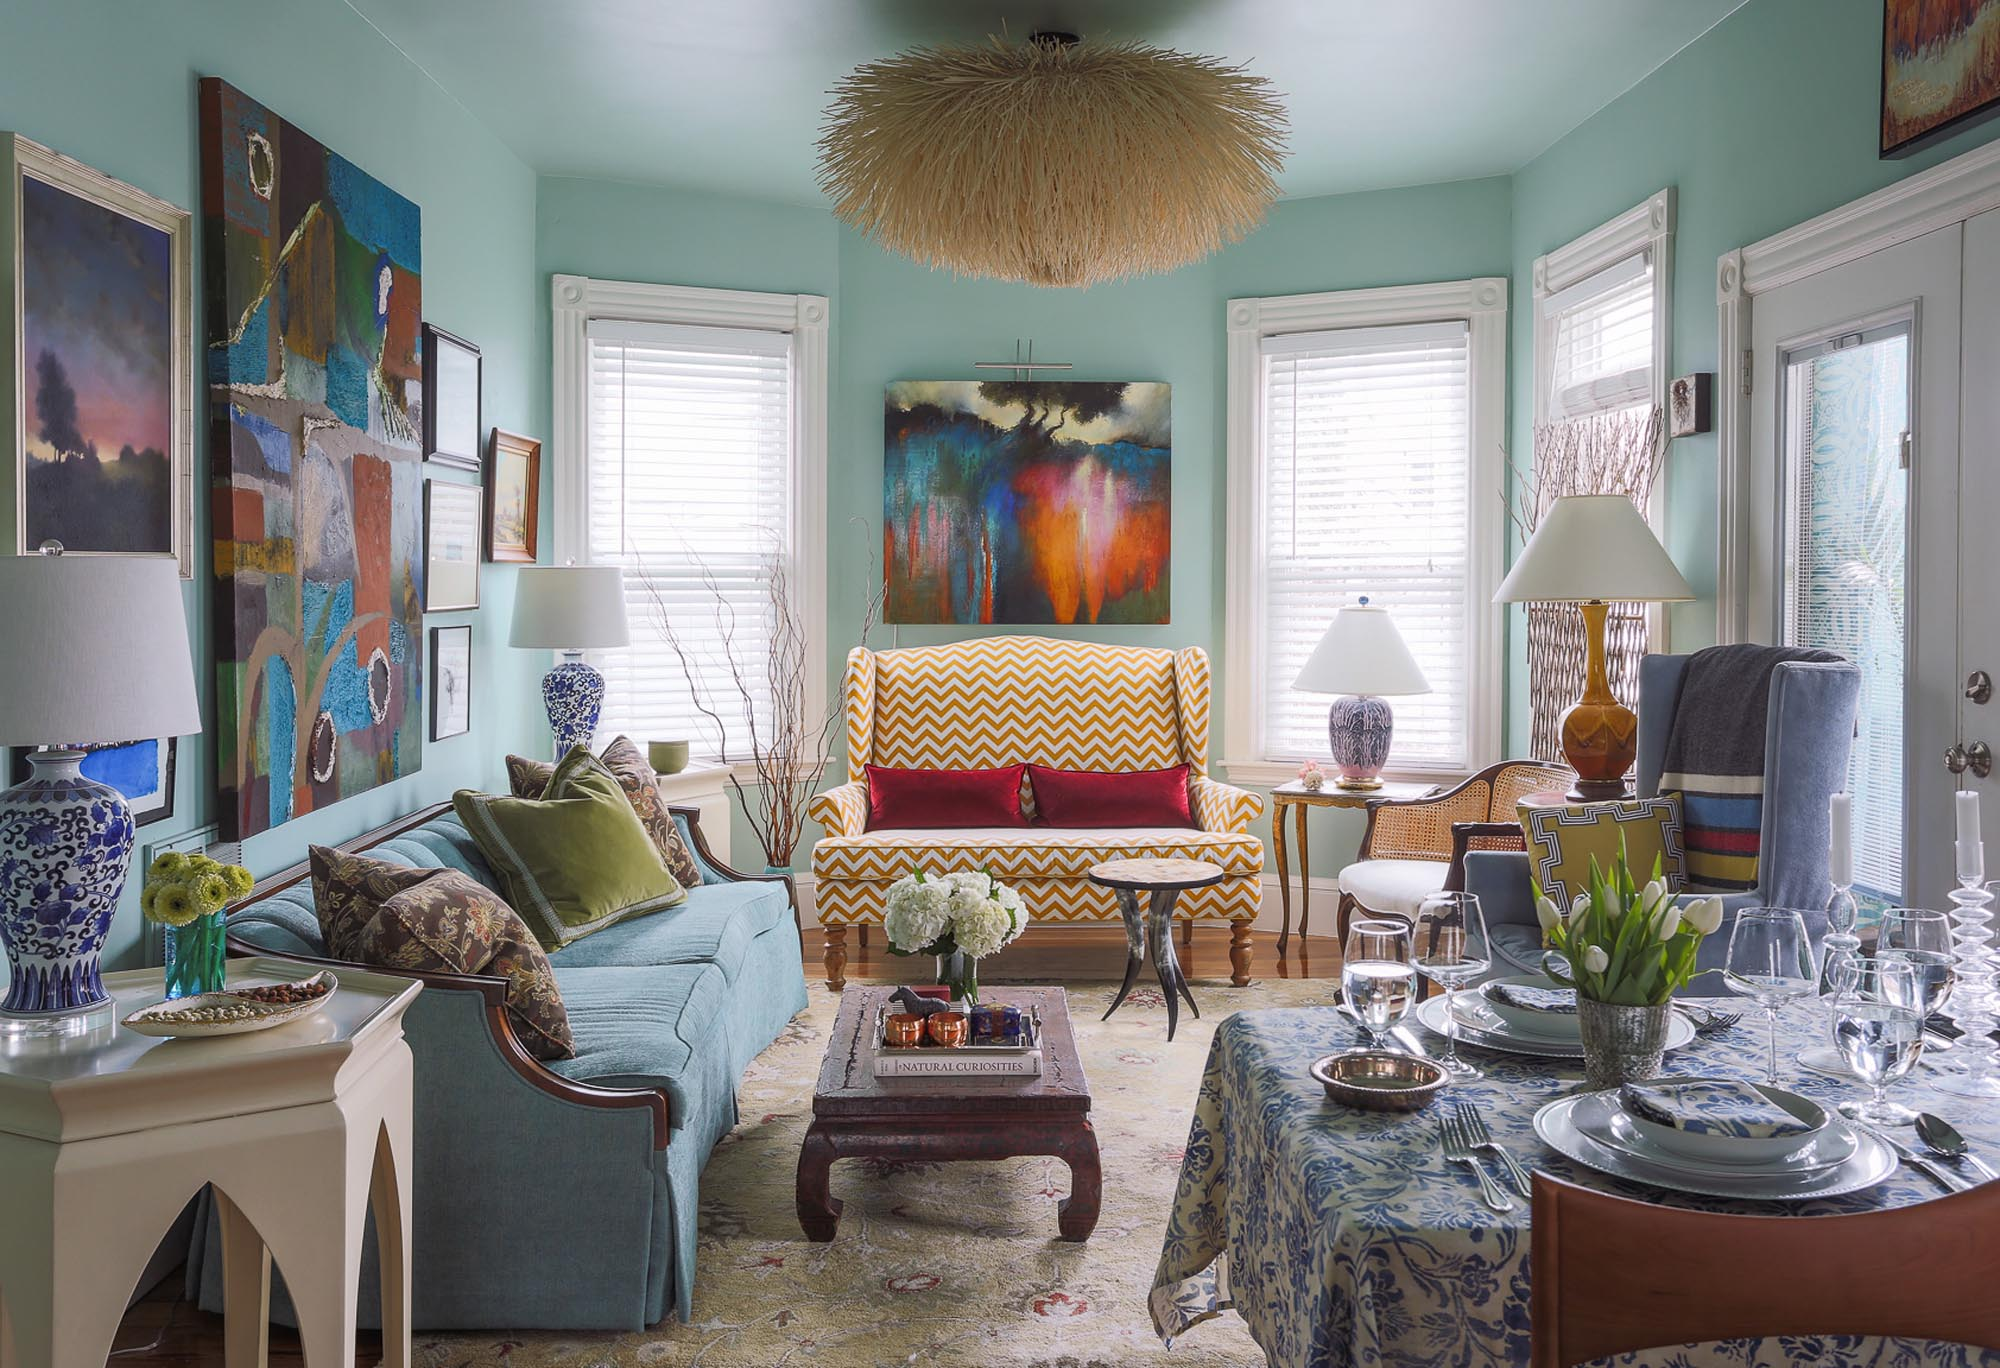 Transitional living room and dining area with colorful paintings